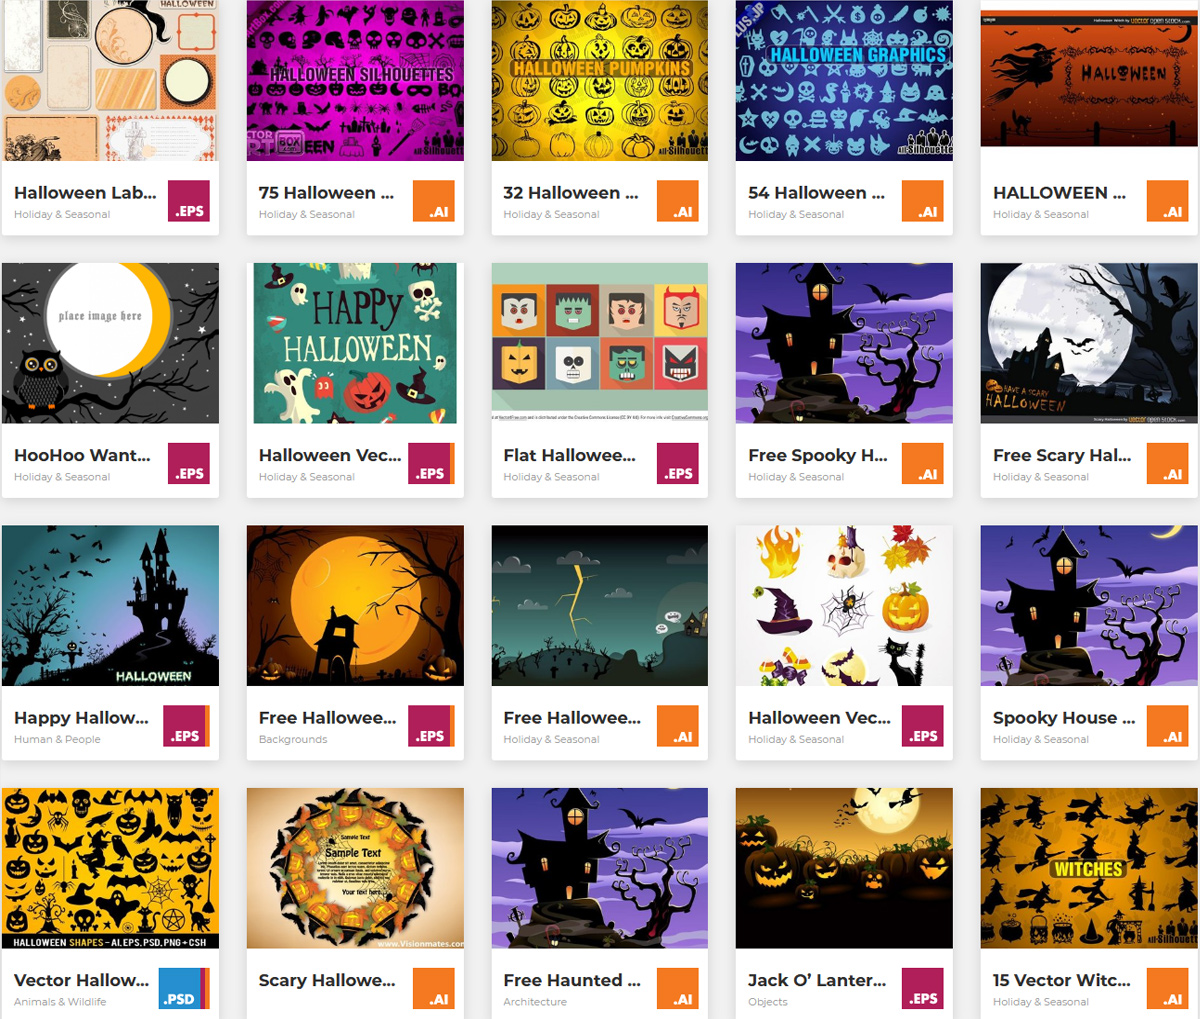 [Freebies] Free Halloween PSD Files, Graphics, Vectors & Images